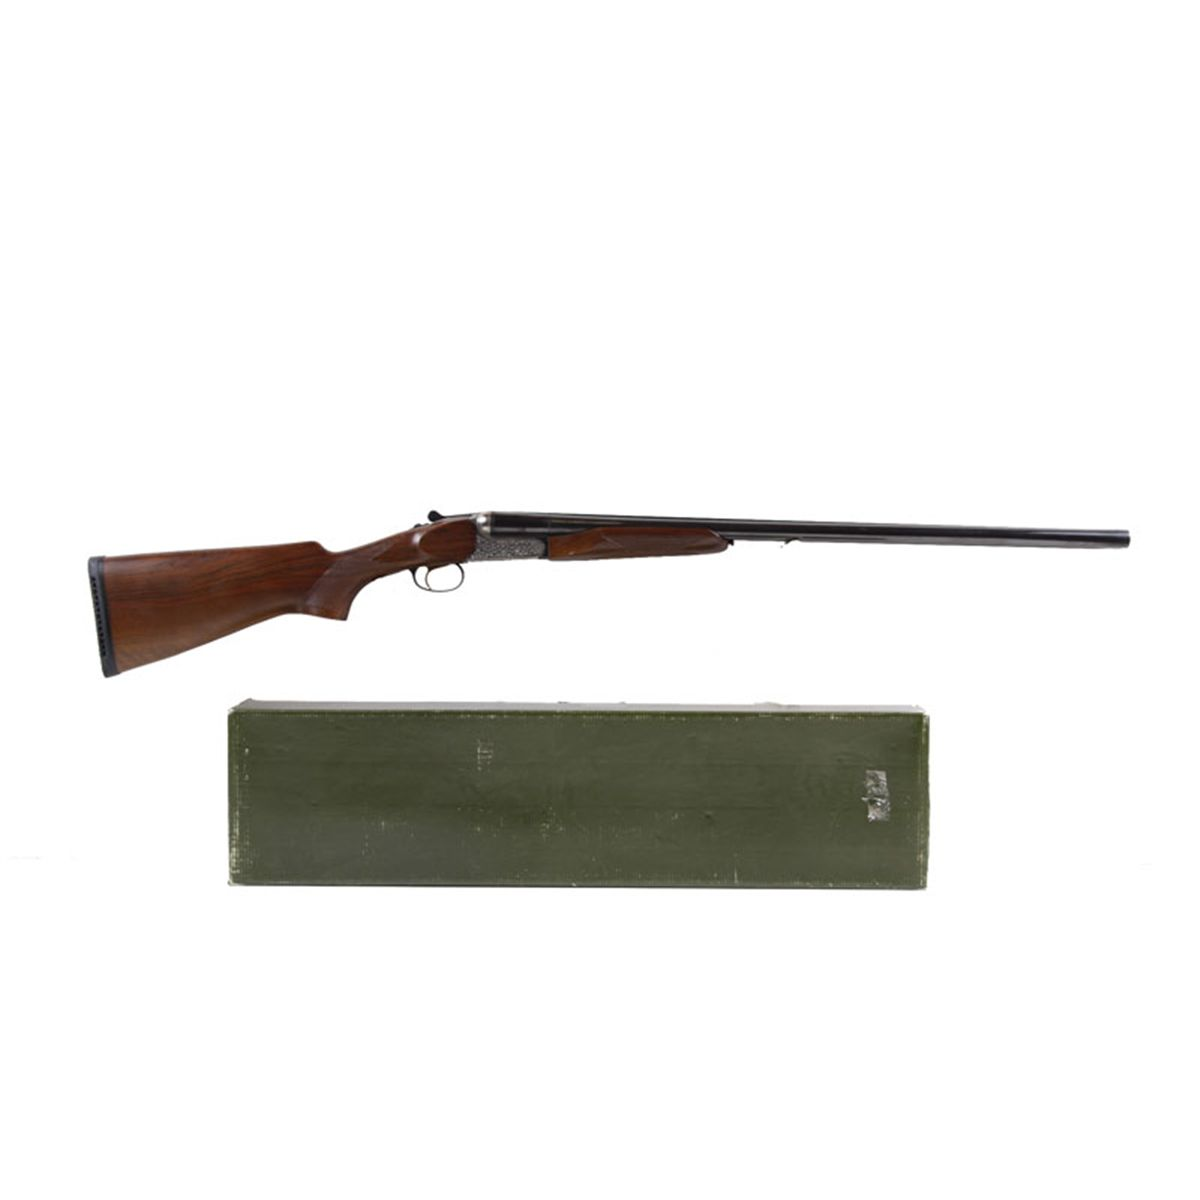 "American Arms Gentry 12 Ga, 3"" SN:60-03-4881-98 Double"